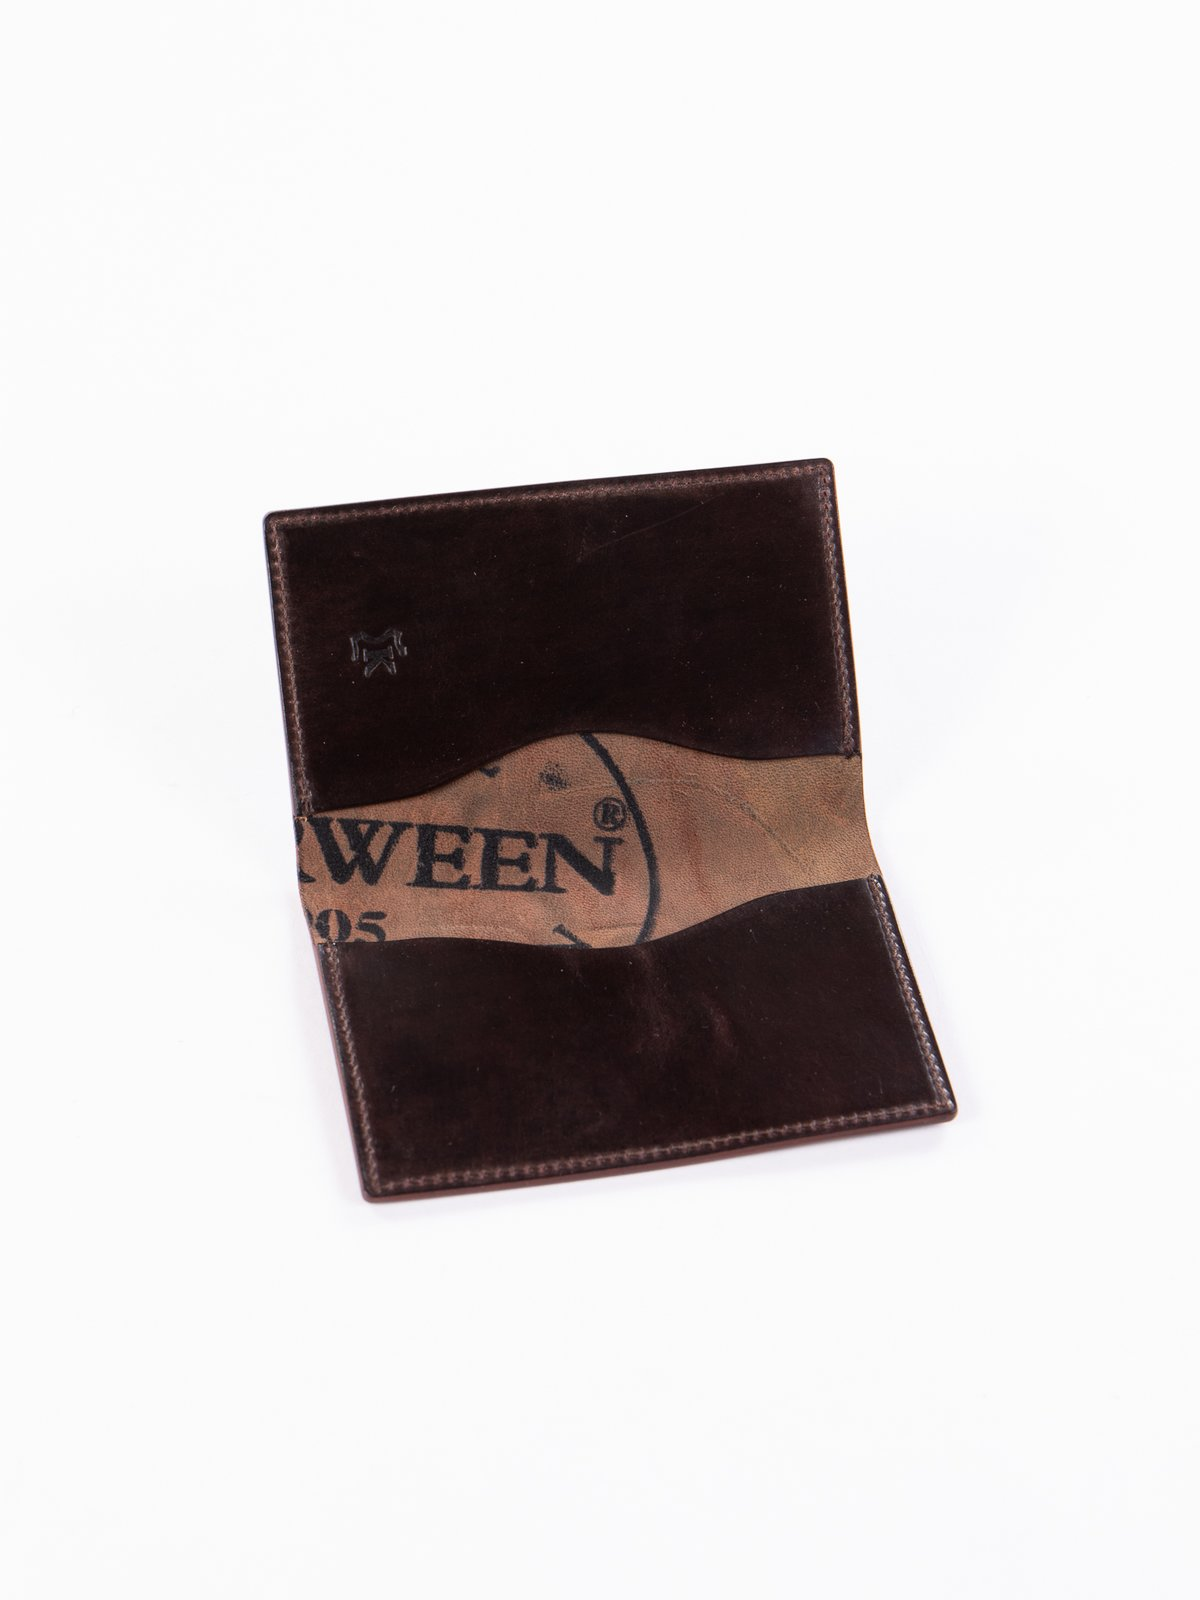 Tumbled Color 8 Horween Cordovan 1–1 Card Case - Image 2